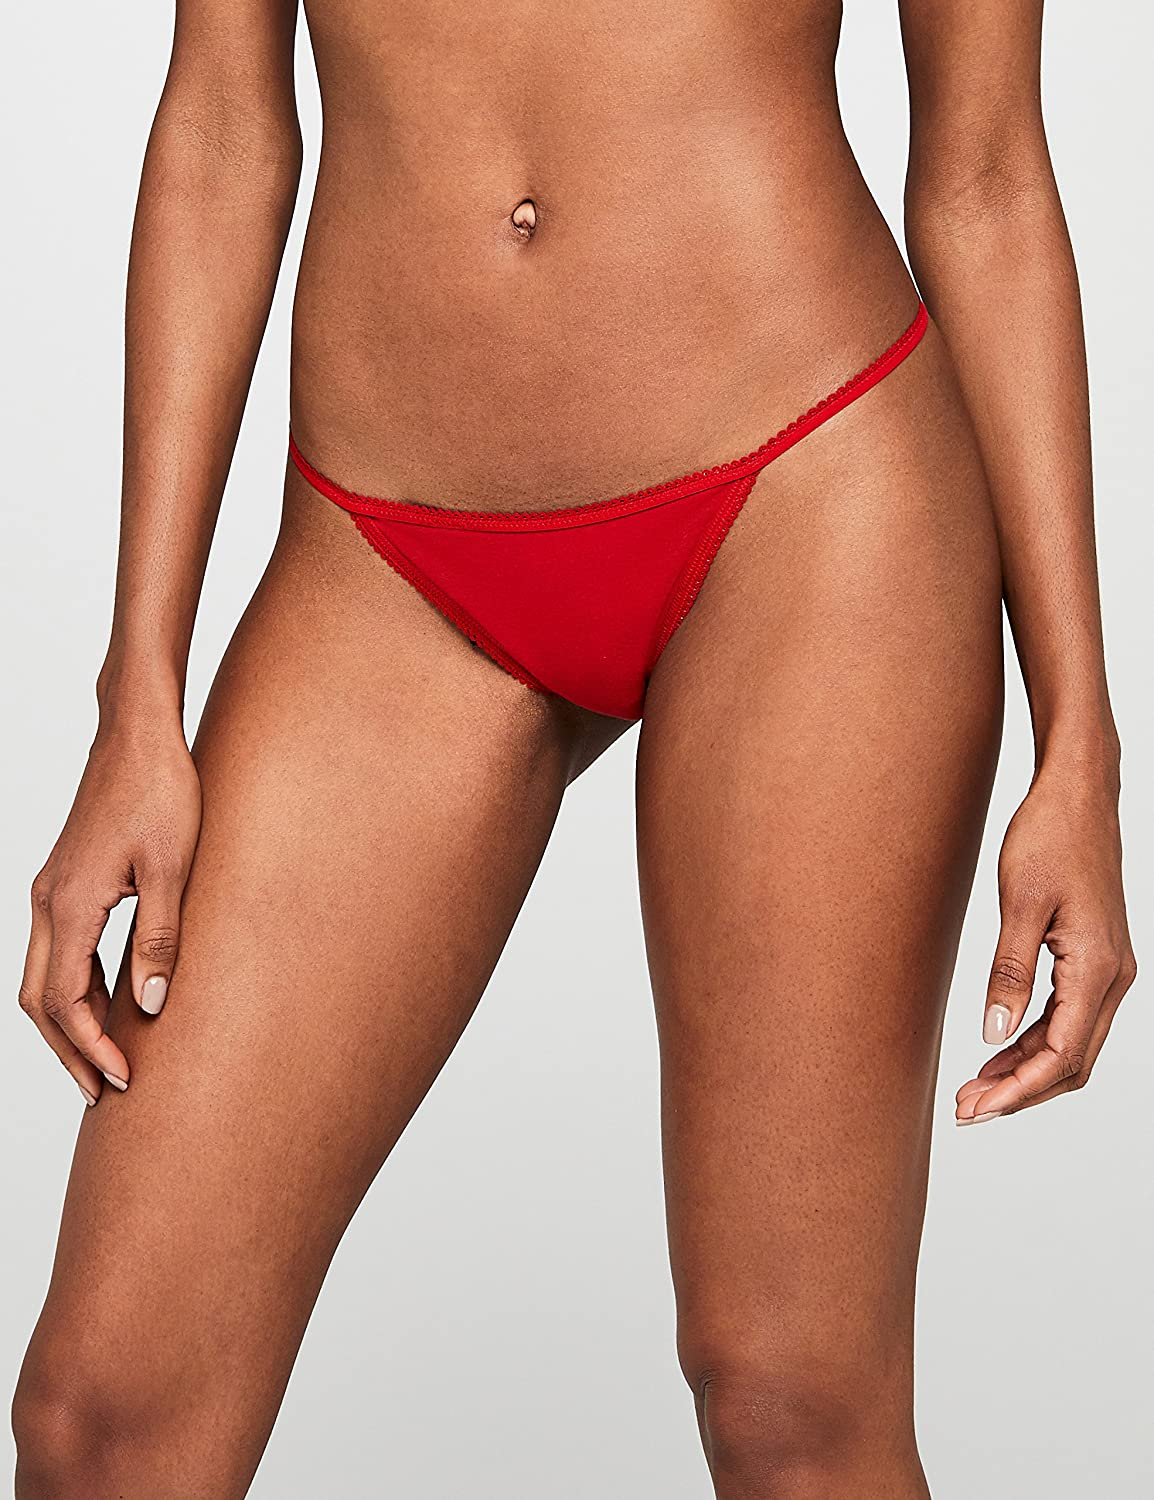 Brand Pack of 5 Iris /& Lilly Womens G String Thong